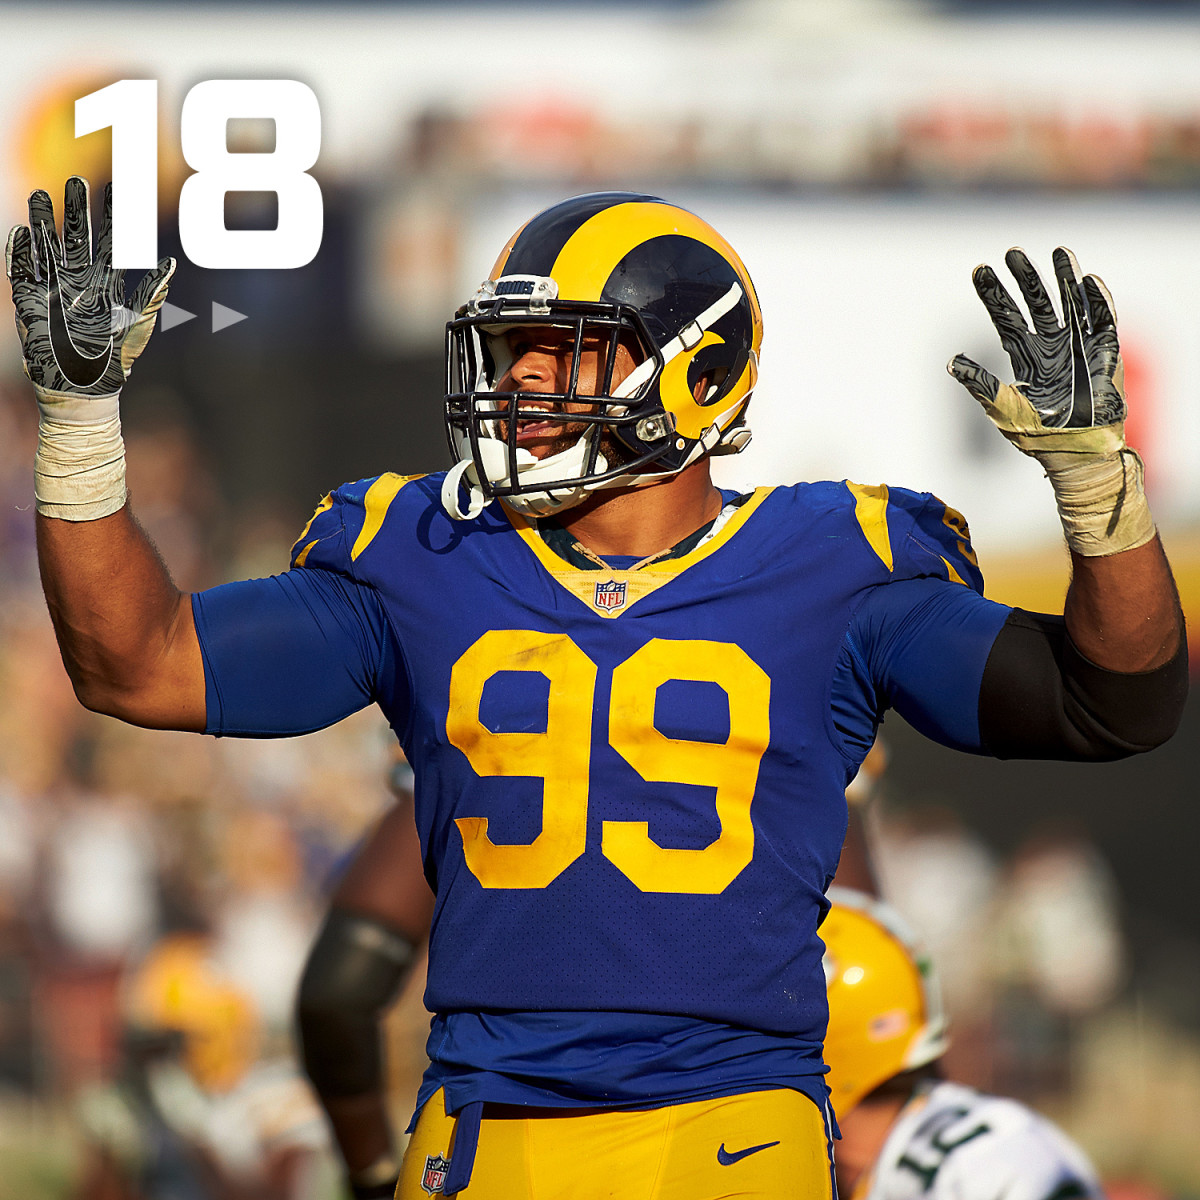 aaron_donald_fittest50